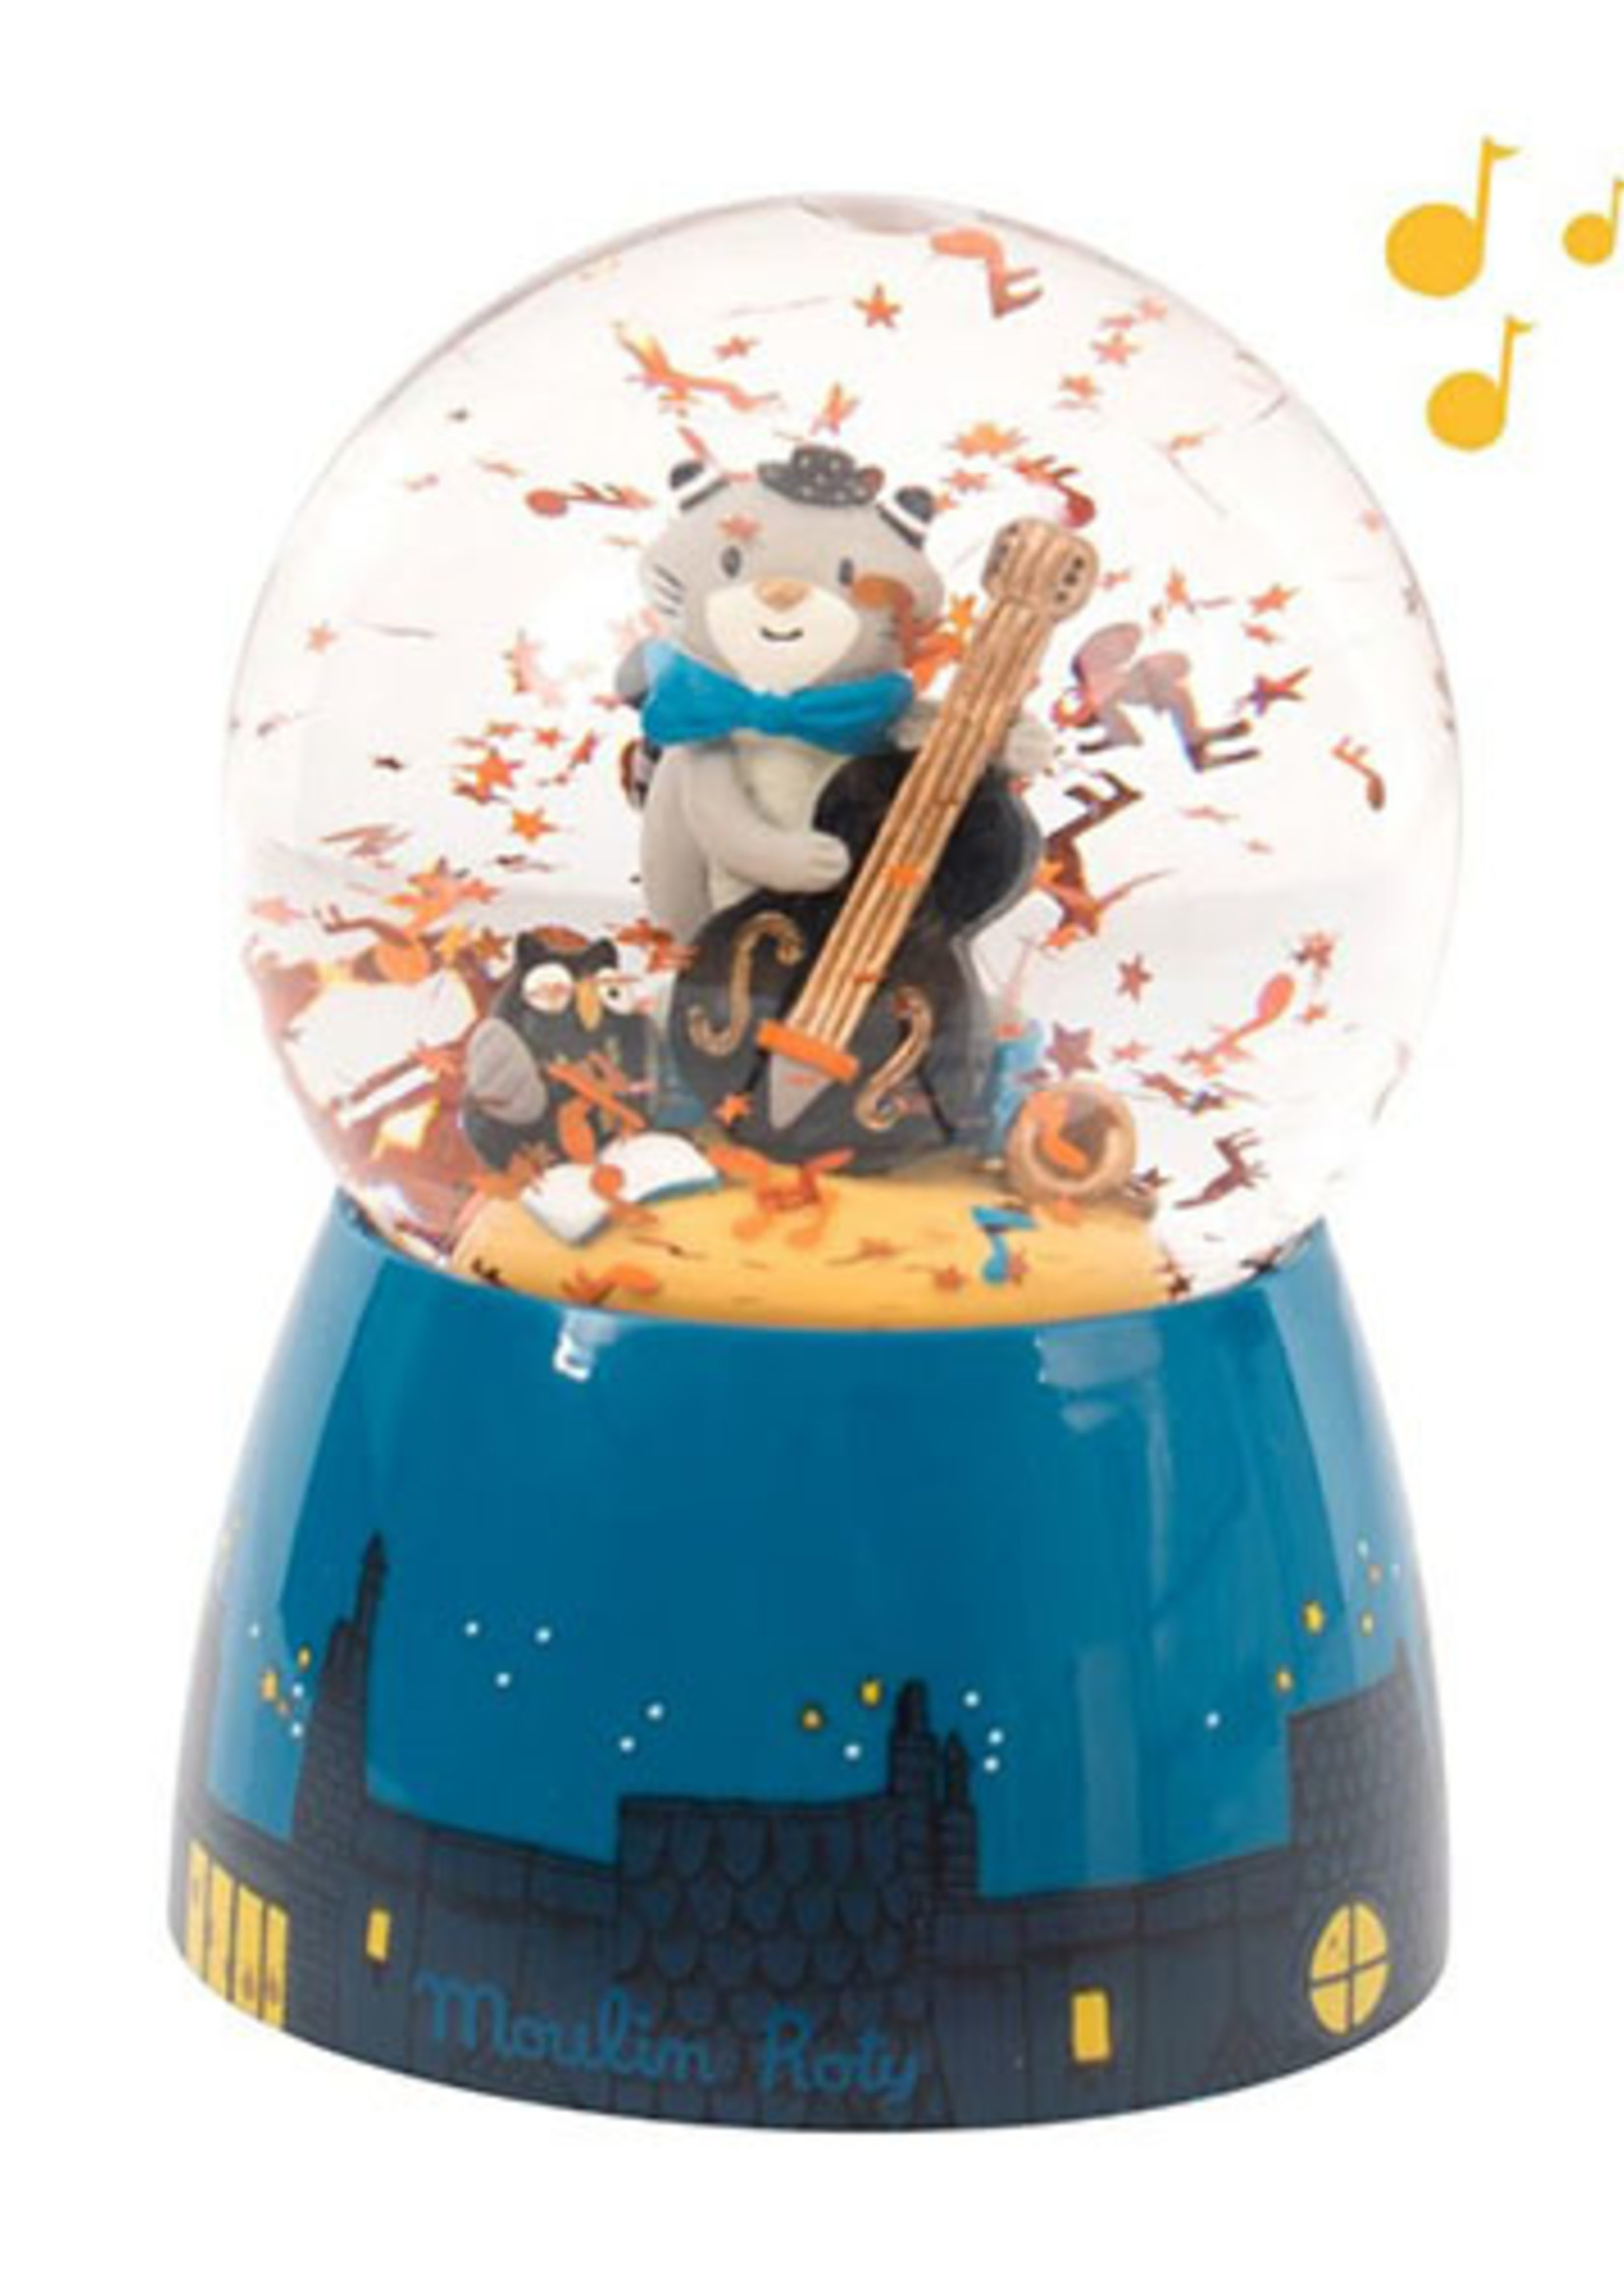 Mideer Moustaches - Musical Snow Globe    Code: 666241